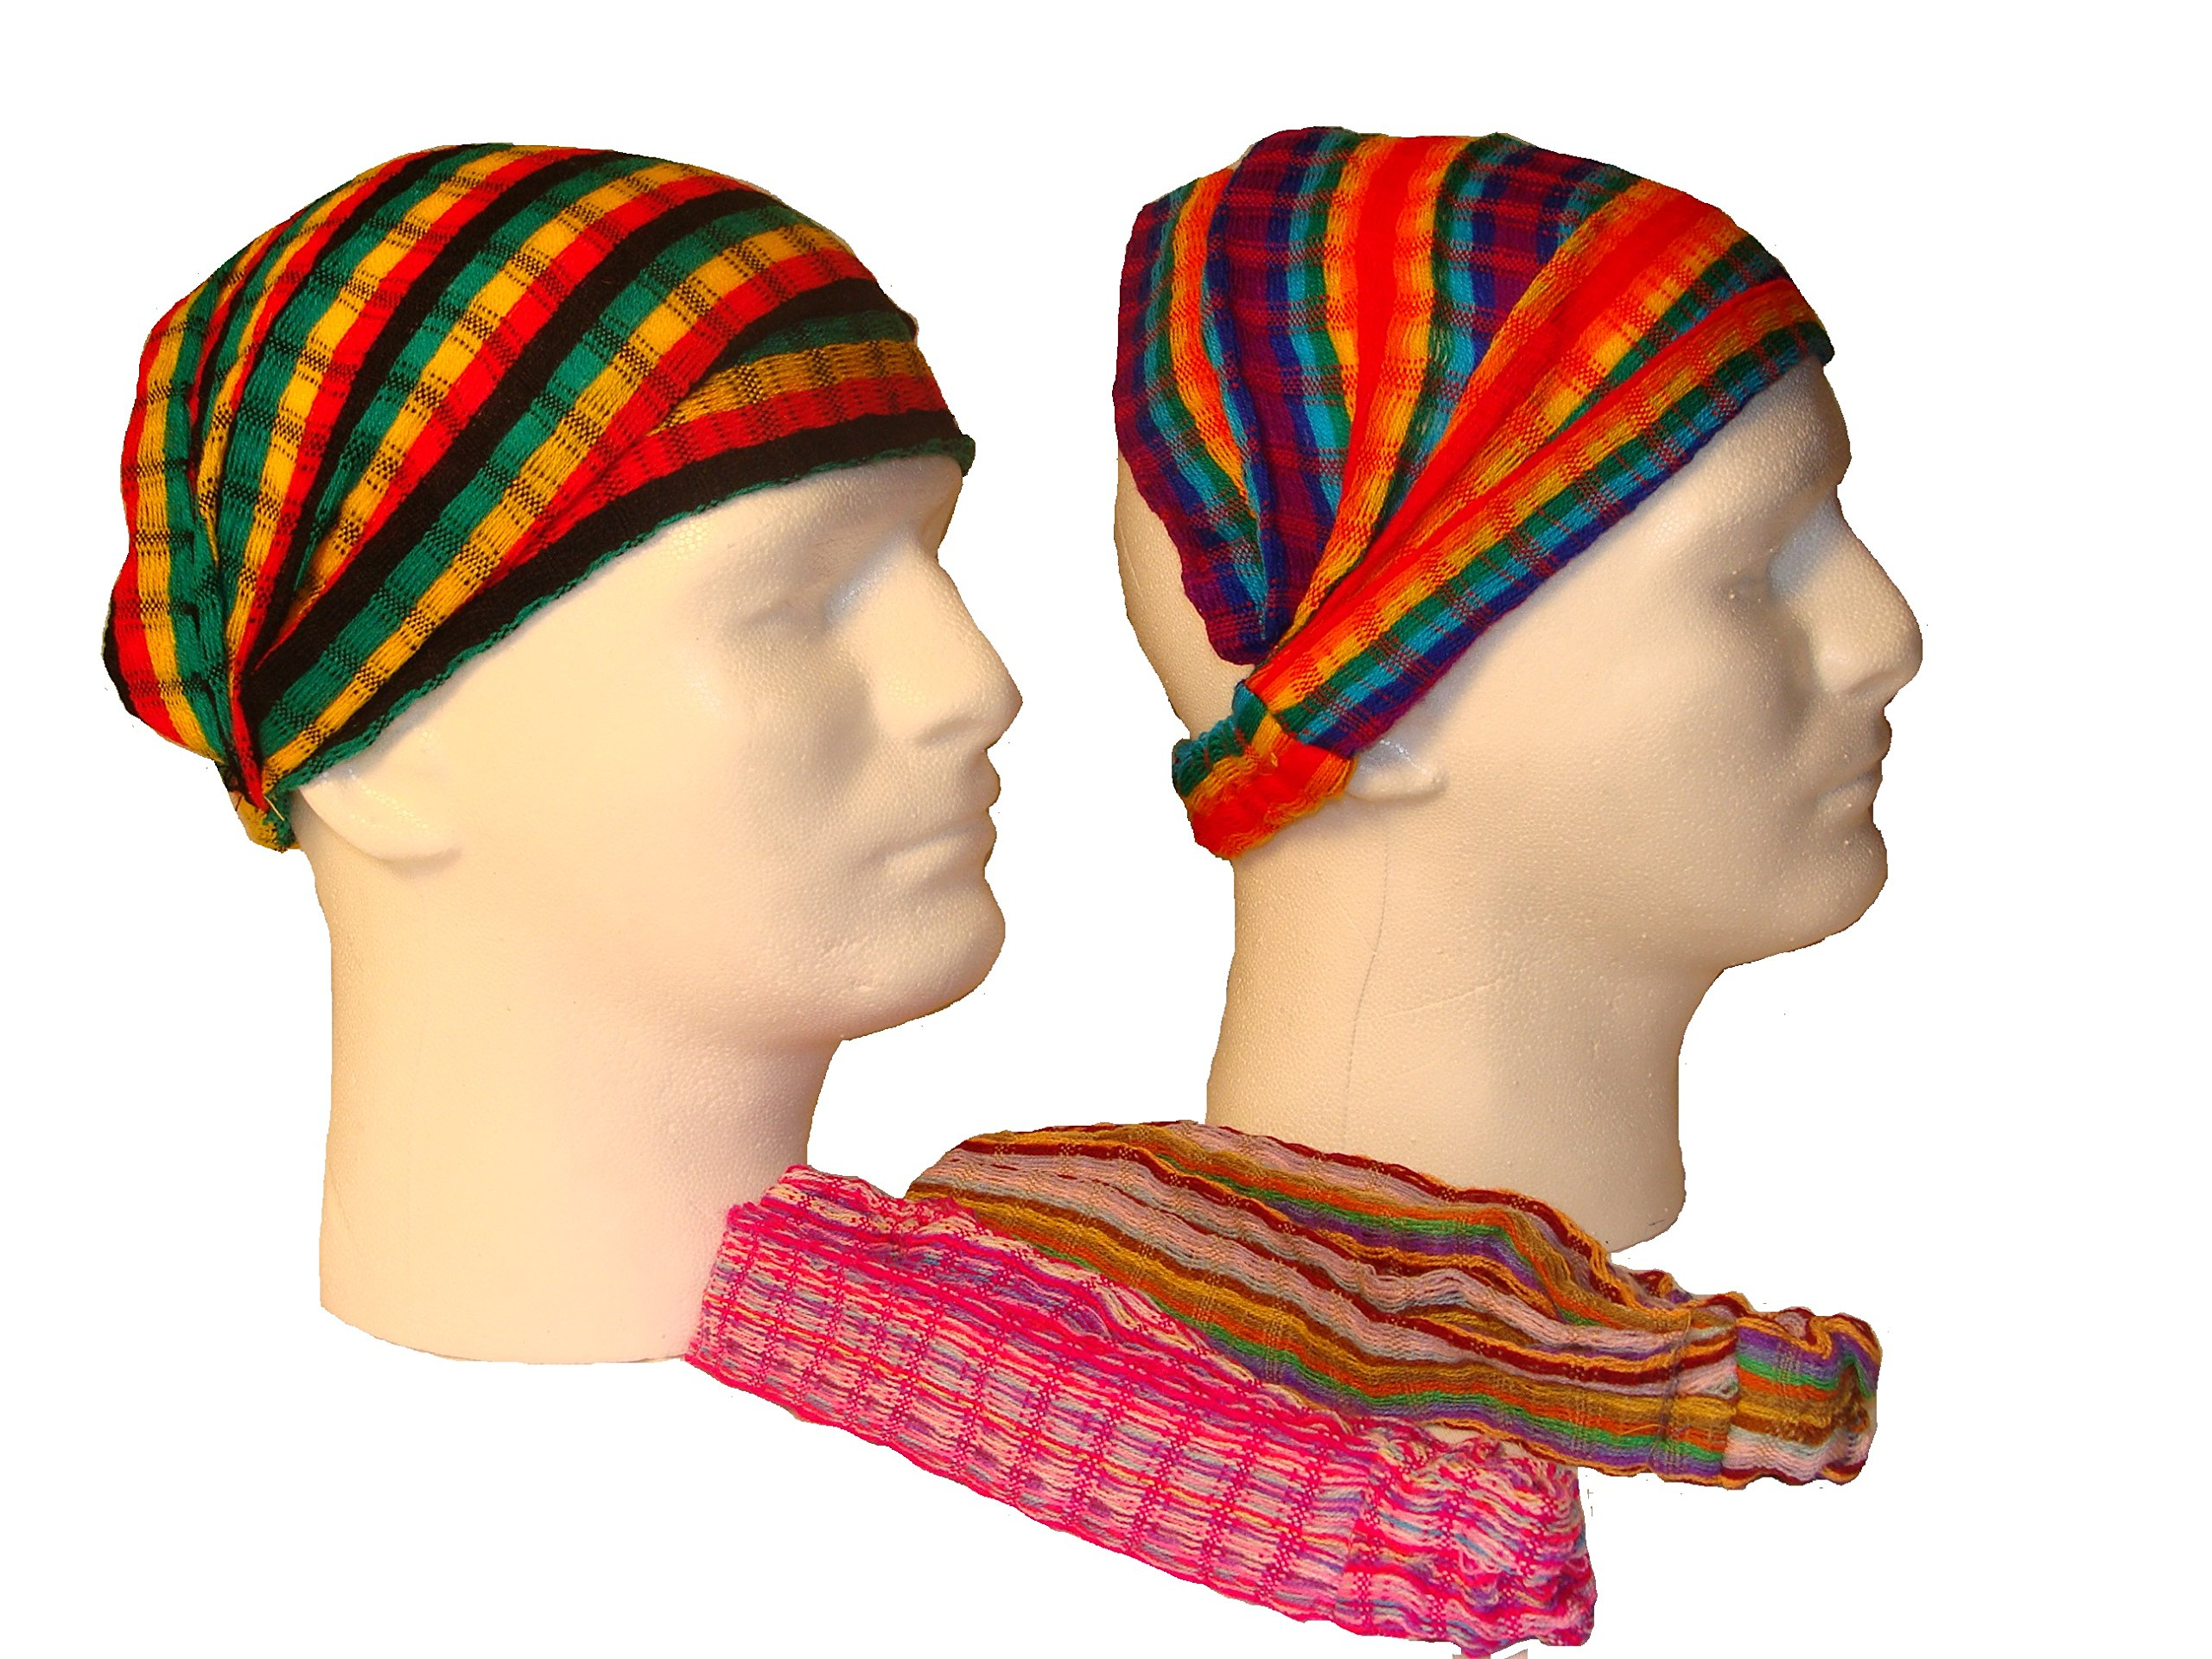 Wholesale 3 Cotton Headbands Hair Assortment Hand Woven Colorful Peru Fair Trade by Sanyork (Image #3)